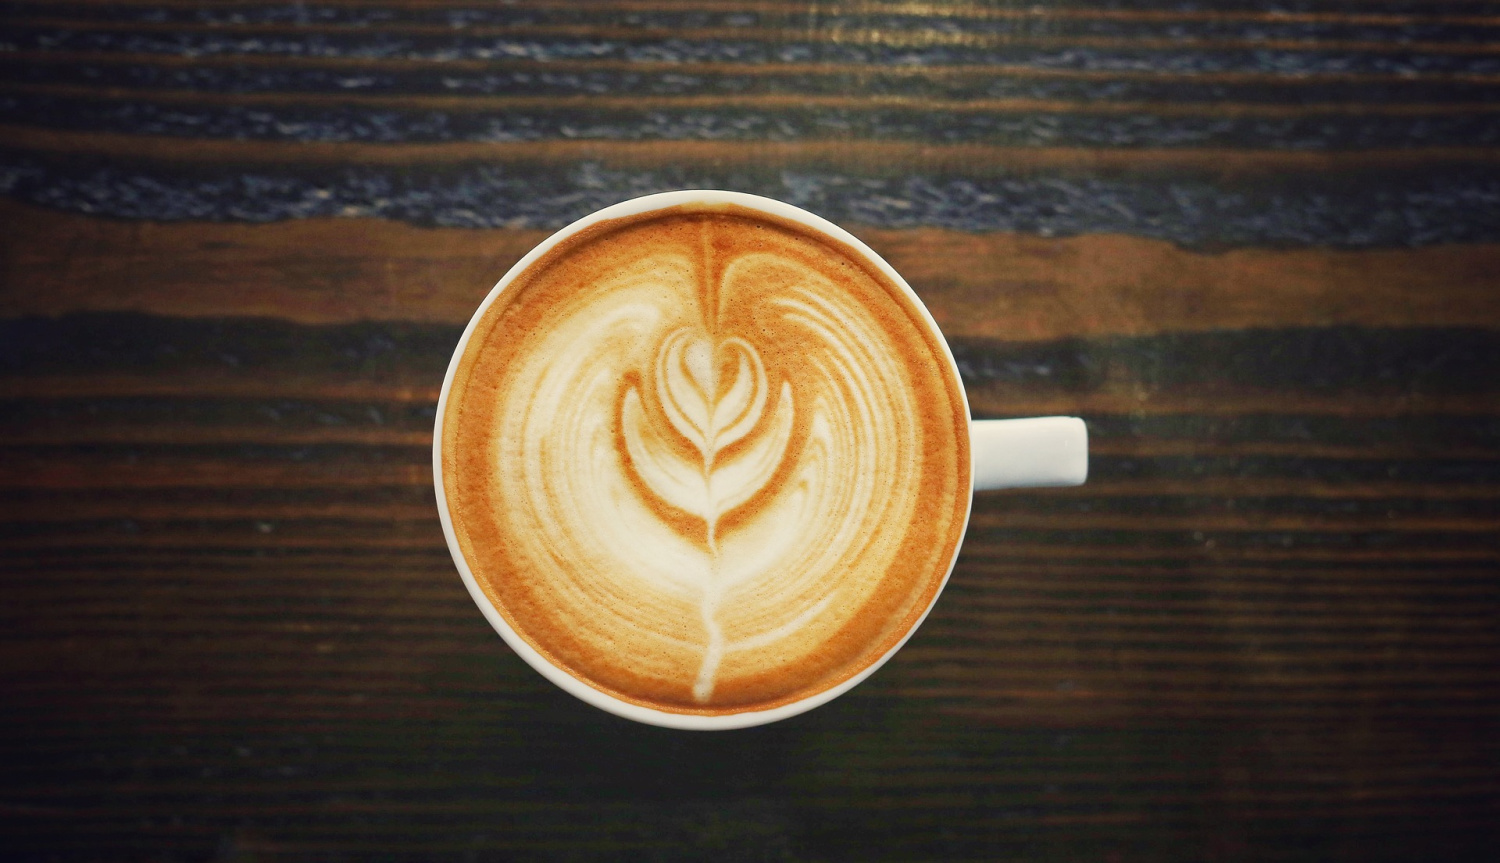 overhead view of latte in a mug